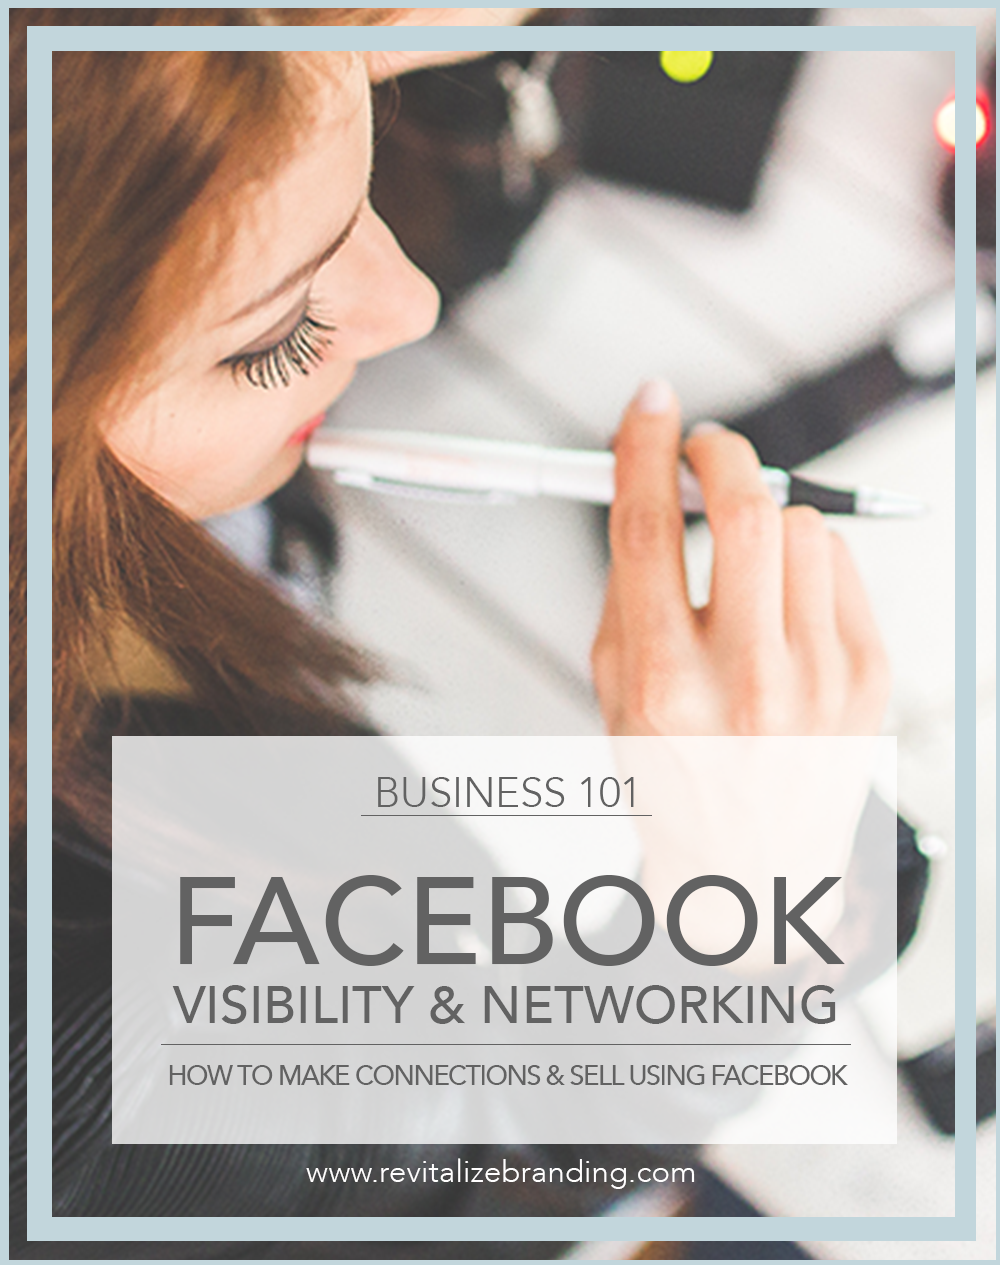 How to get visible on Facebook - Revitalize Branding